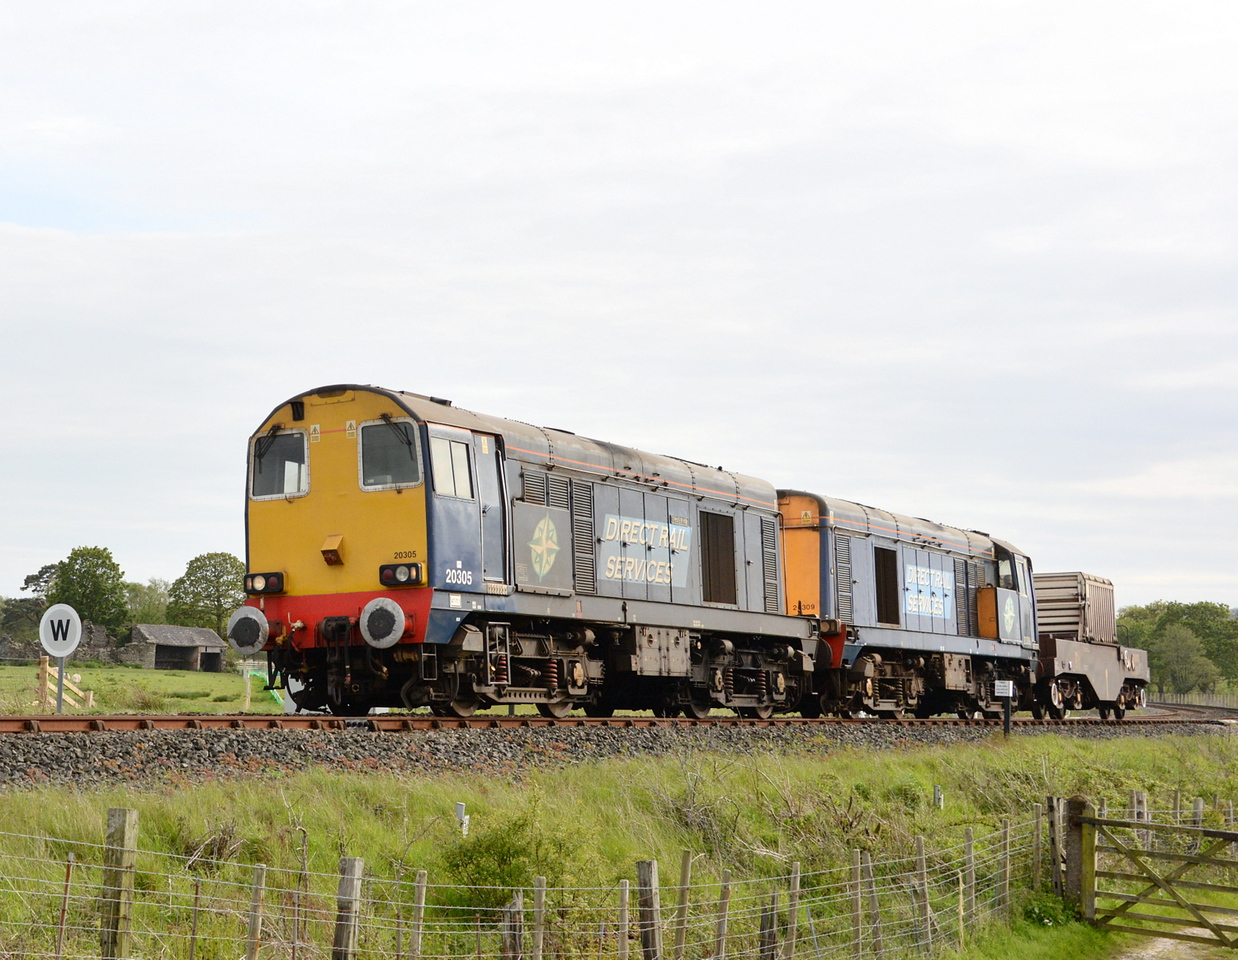 20305 and 20309, Lady Hall. 21/05/15.